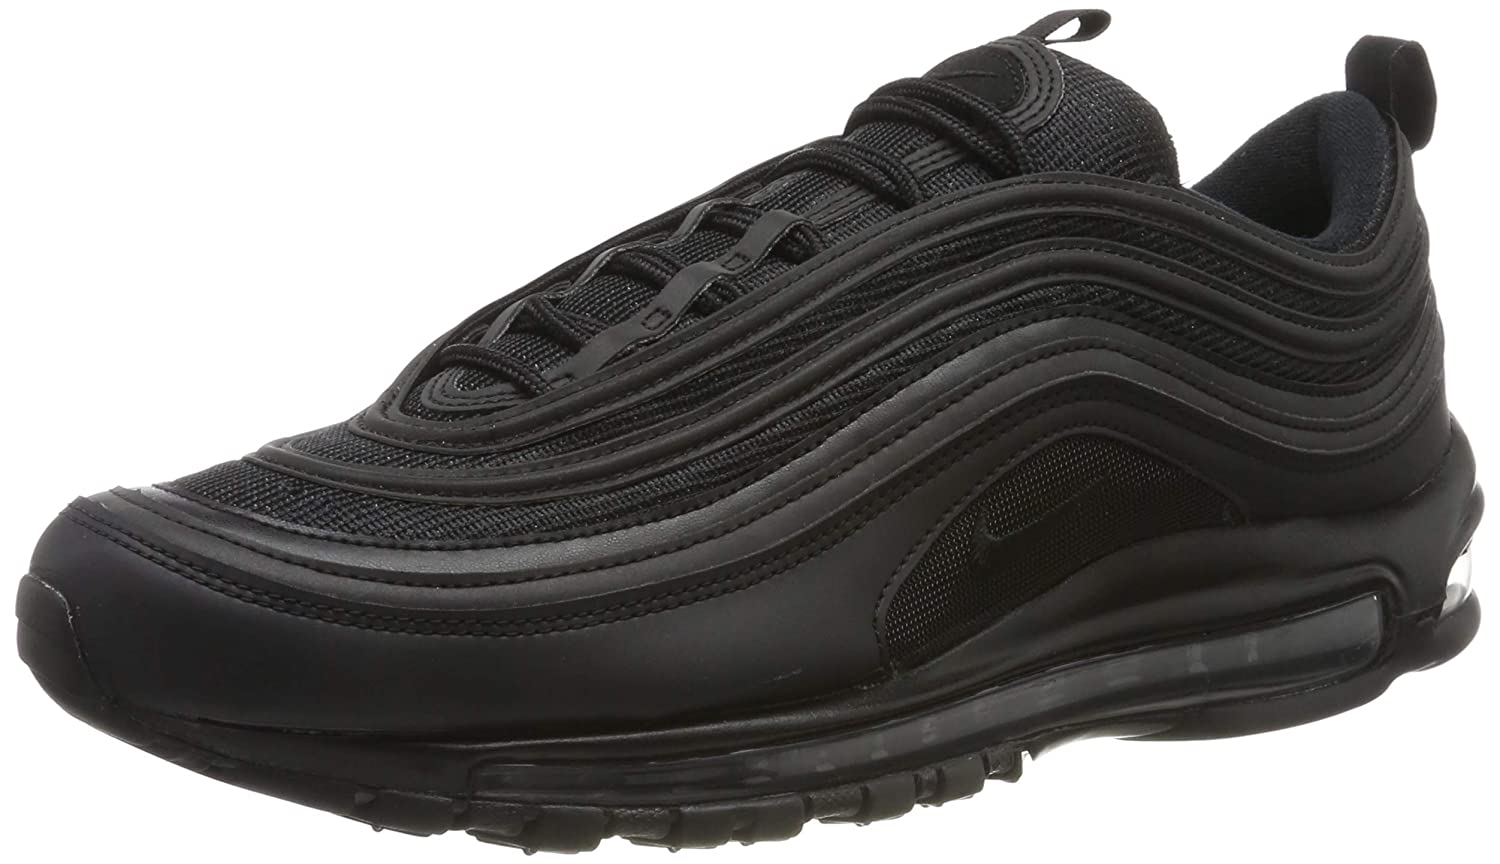 Nike Men's Air Max 97 Fitness Shoes